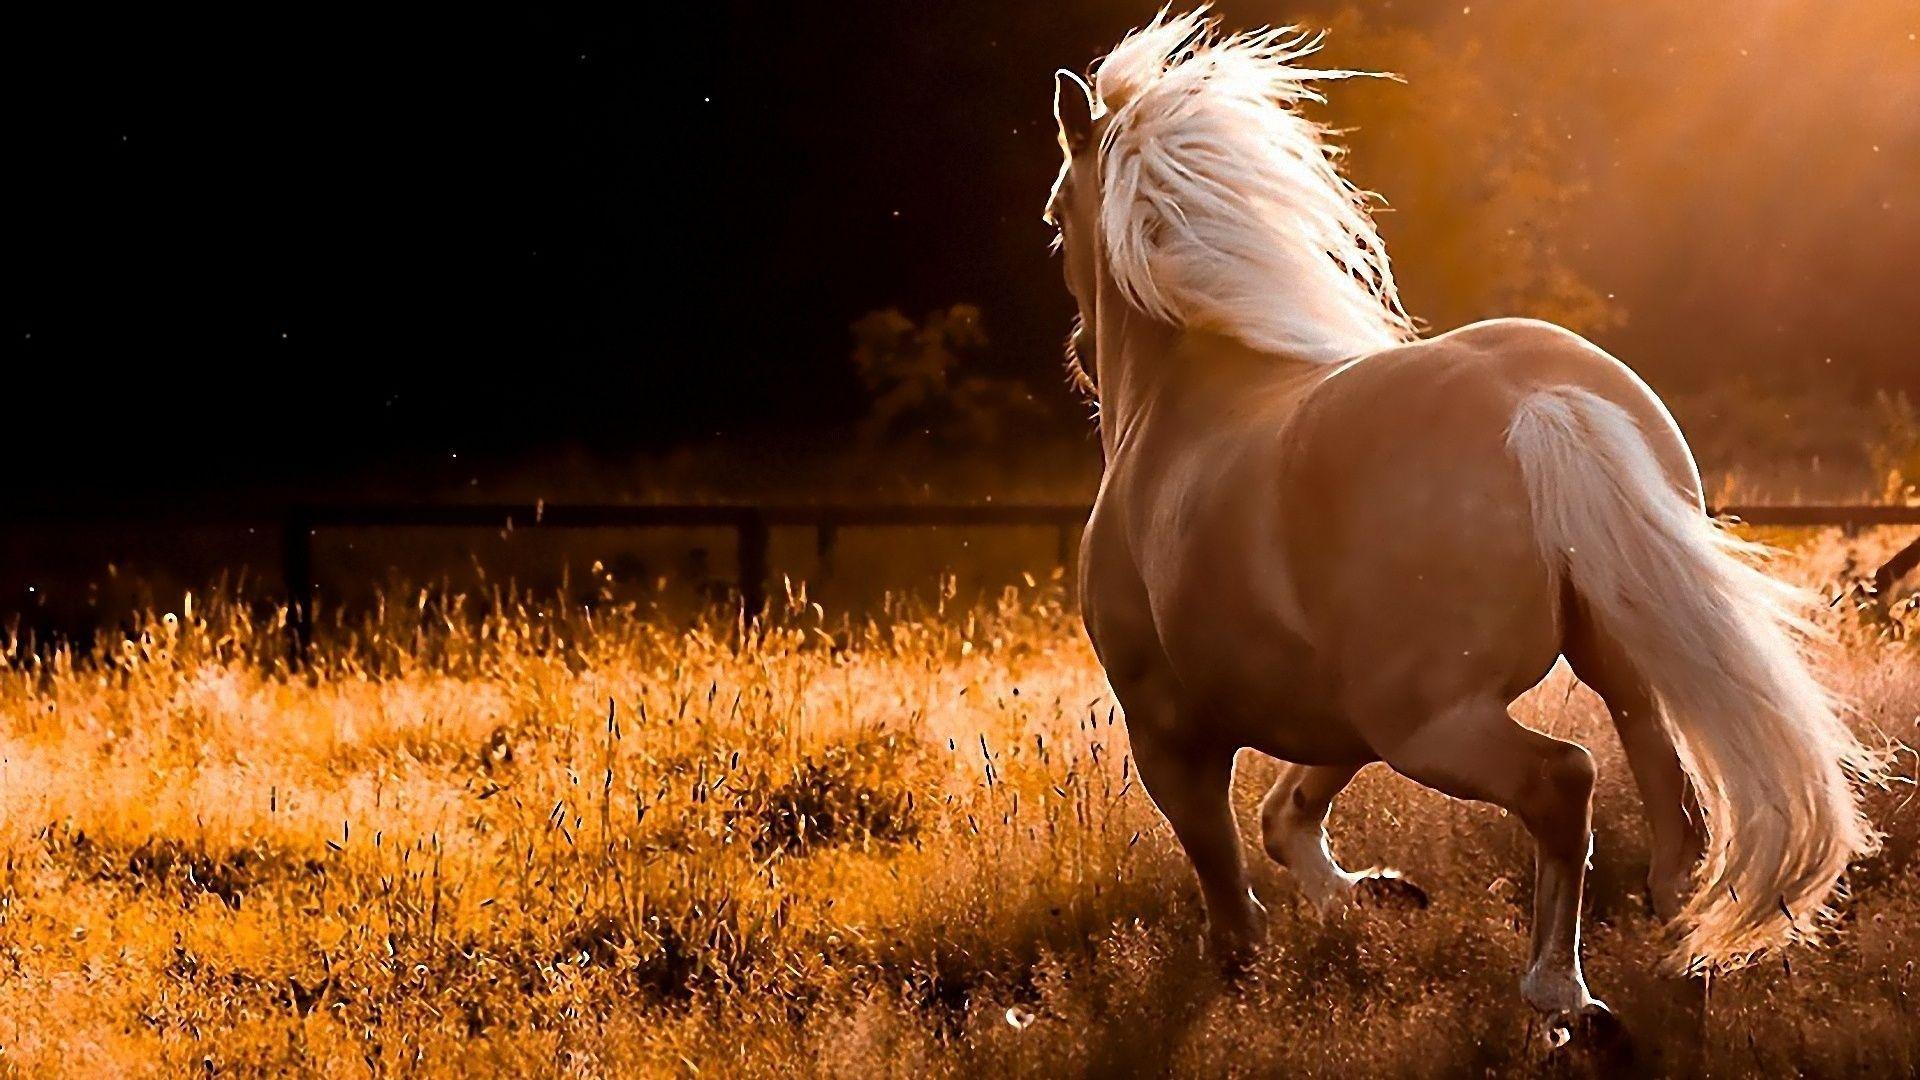 Must see Wallpaper Horse Country - f90820dc24cd4de66206a1a731404c50  You Should Have_939781.jpg